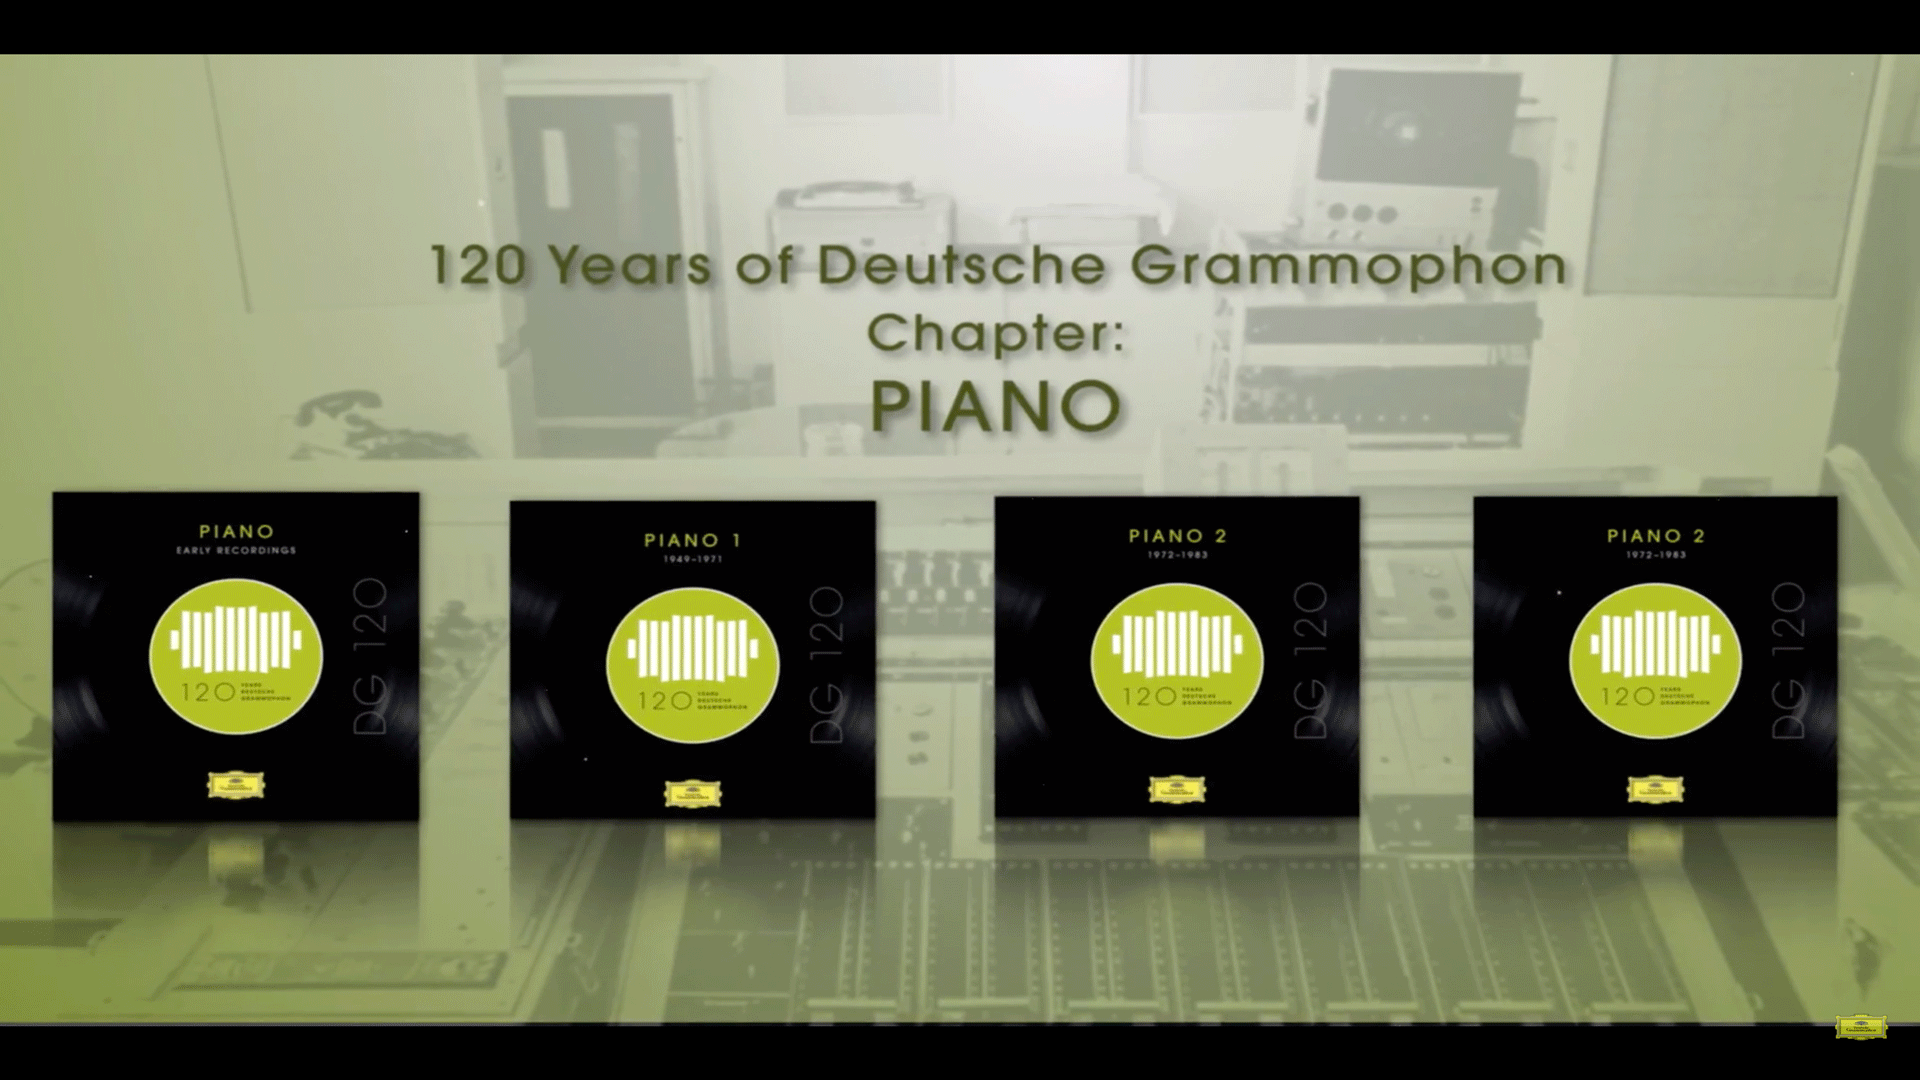 191028 DG 120Jahre PianoCollection